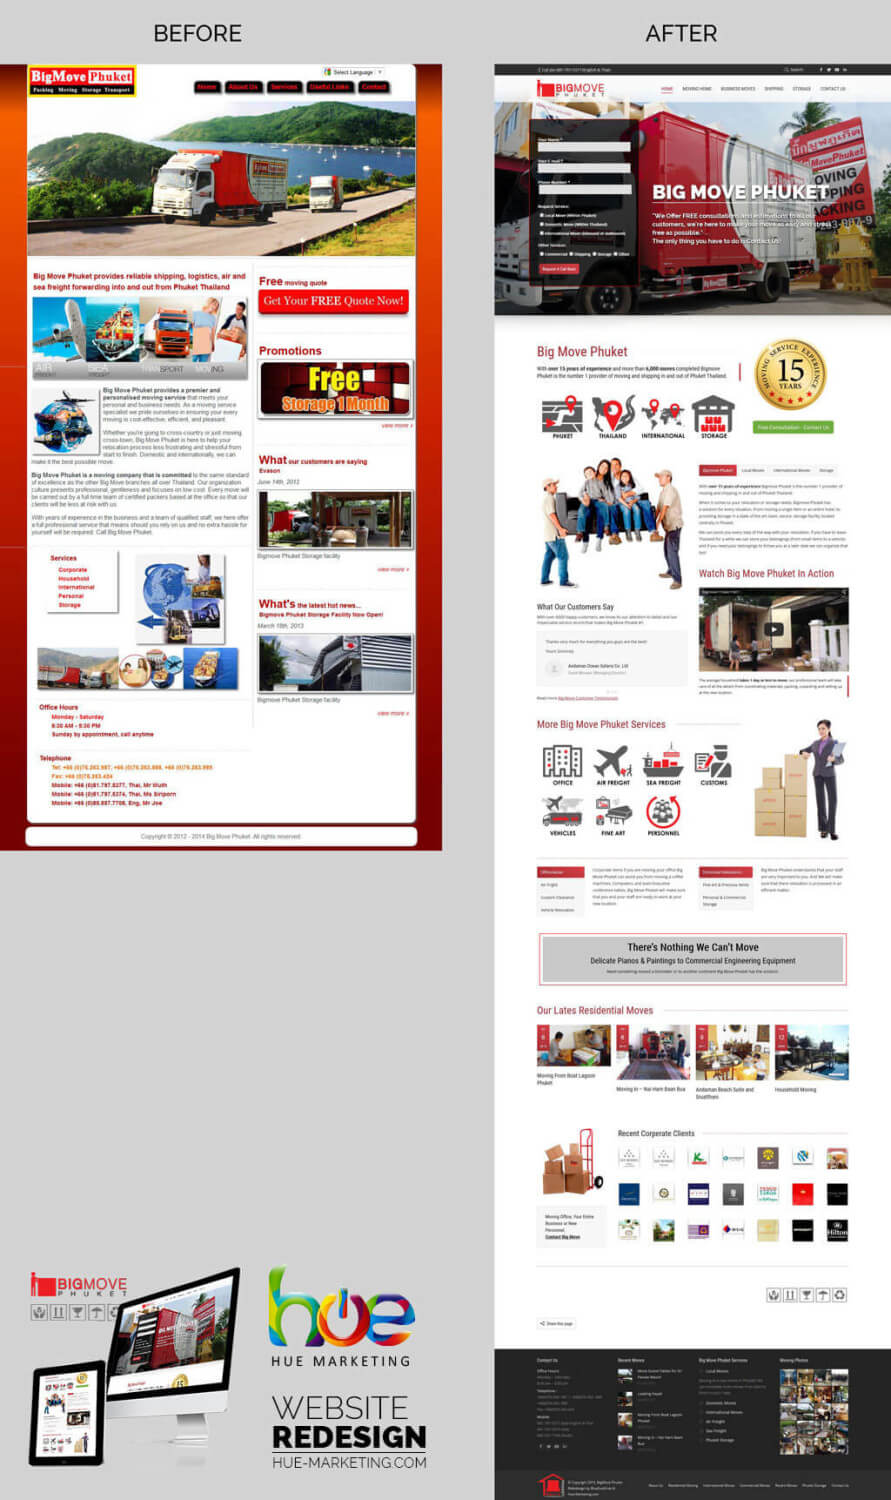 Website Redesign For BigMove Phuket